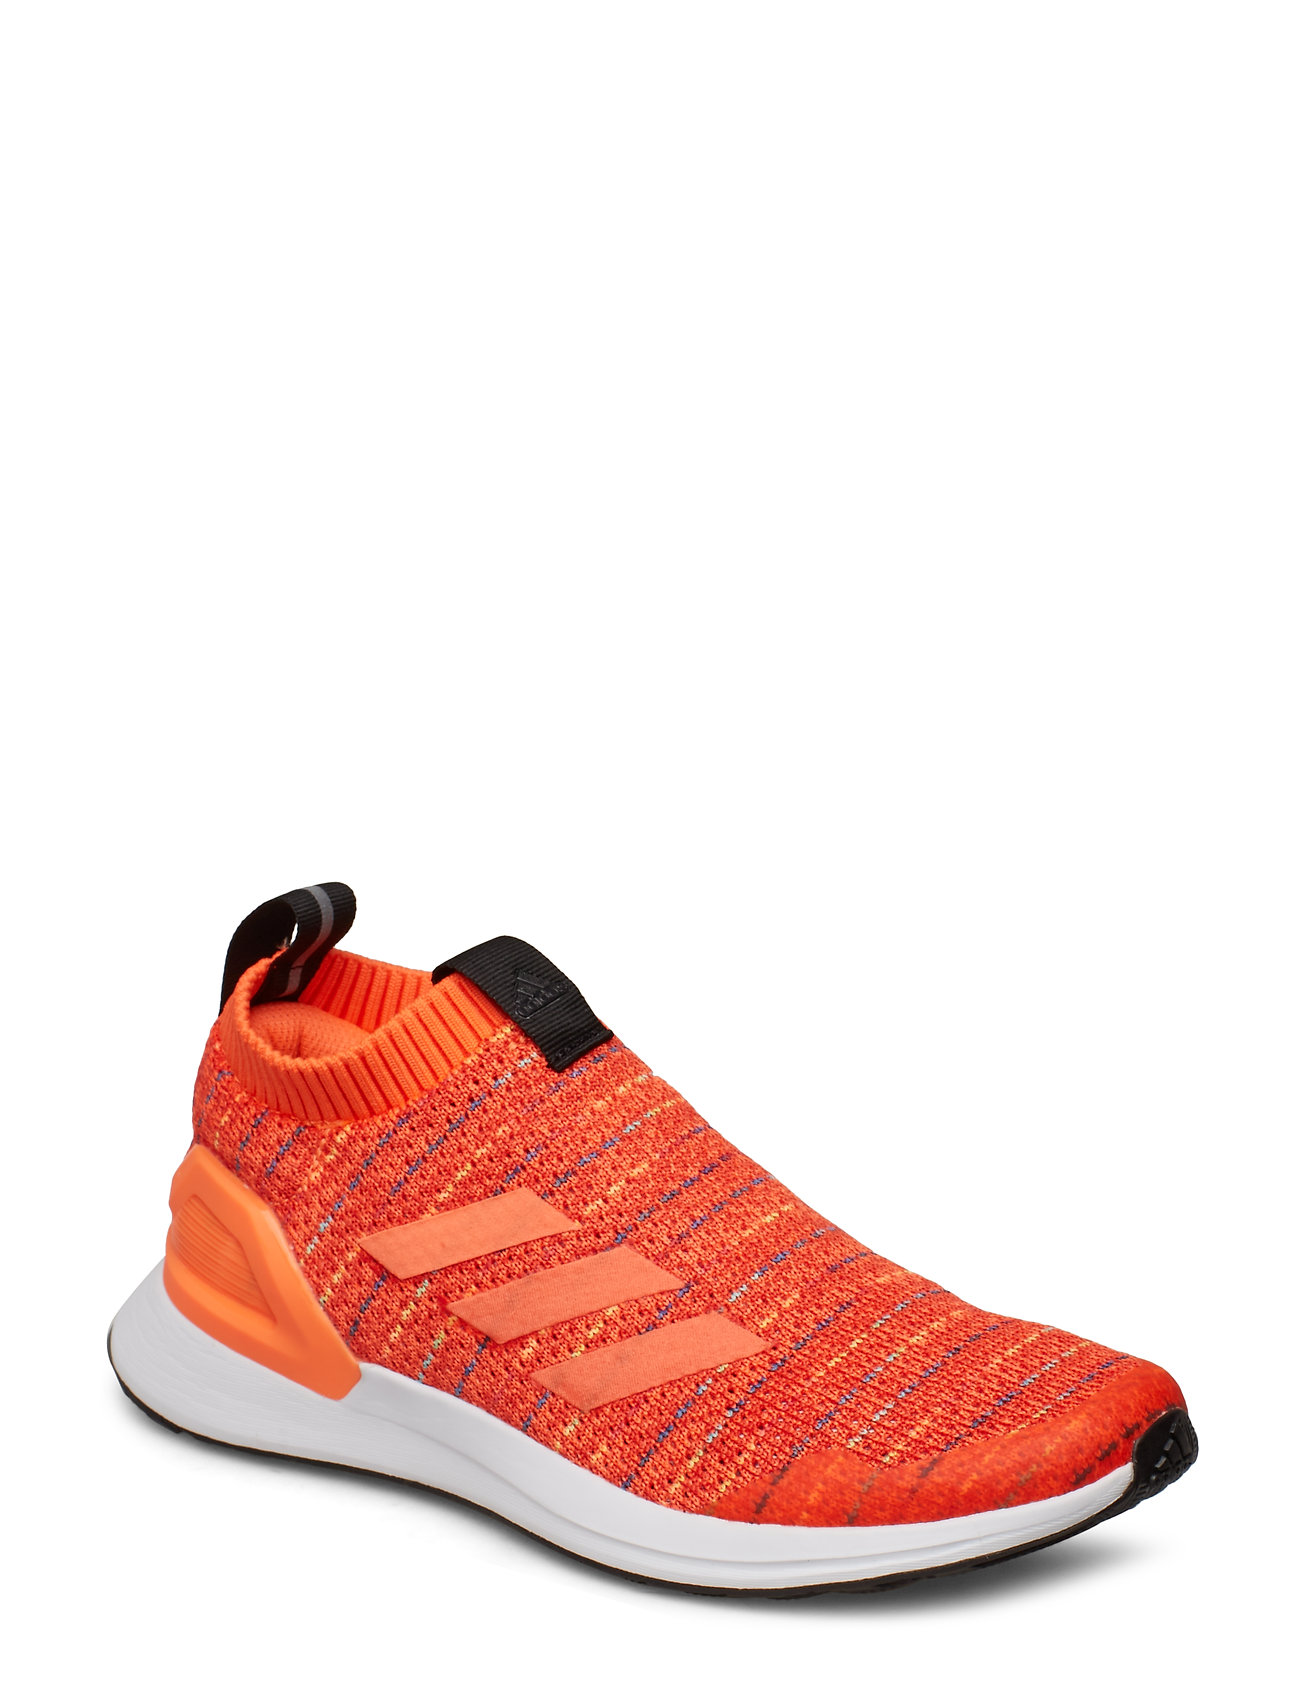 adidas Performance RapidaRun LL KNIT J - ACTORA/HIRECO/CROYAL